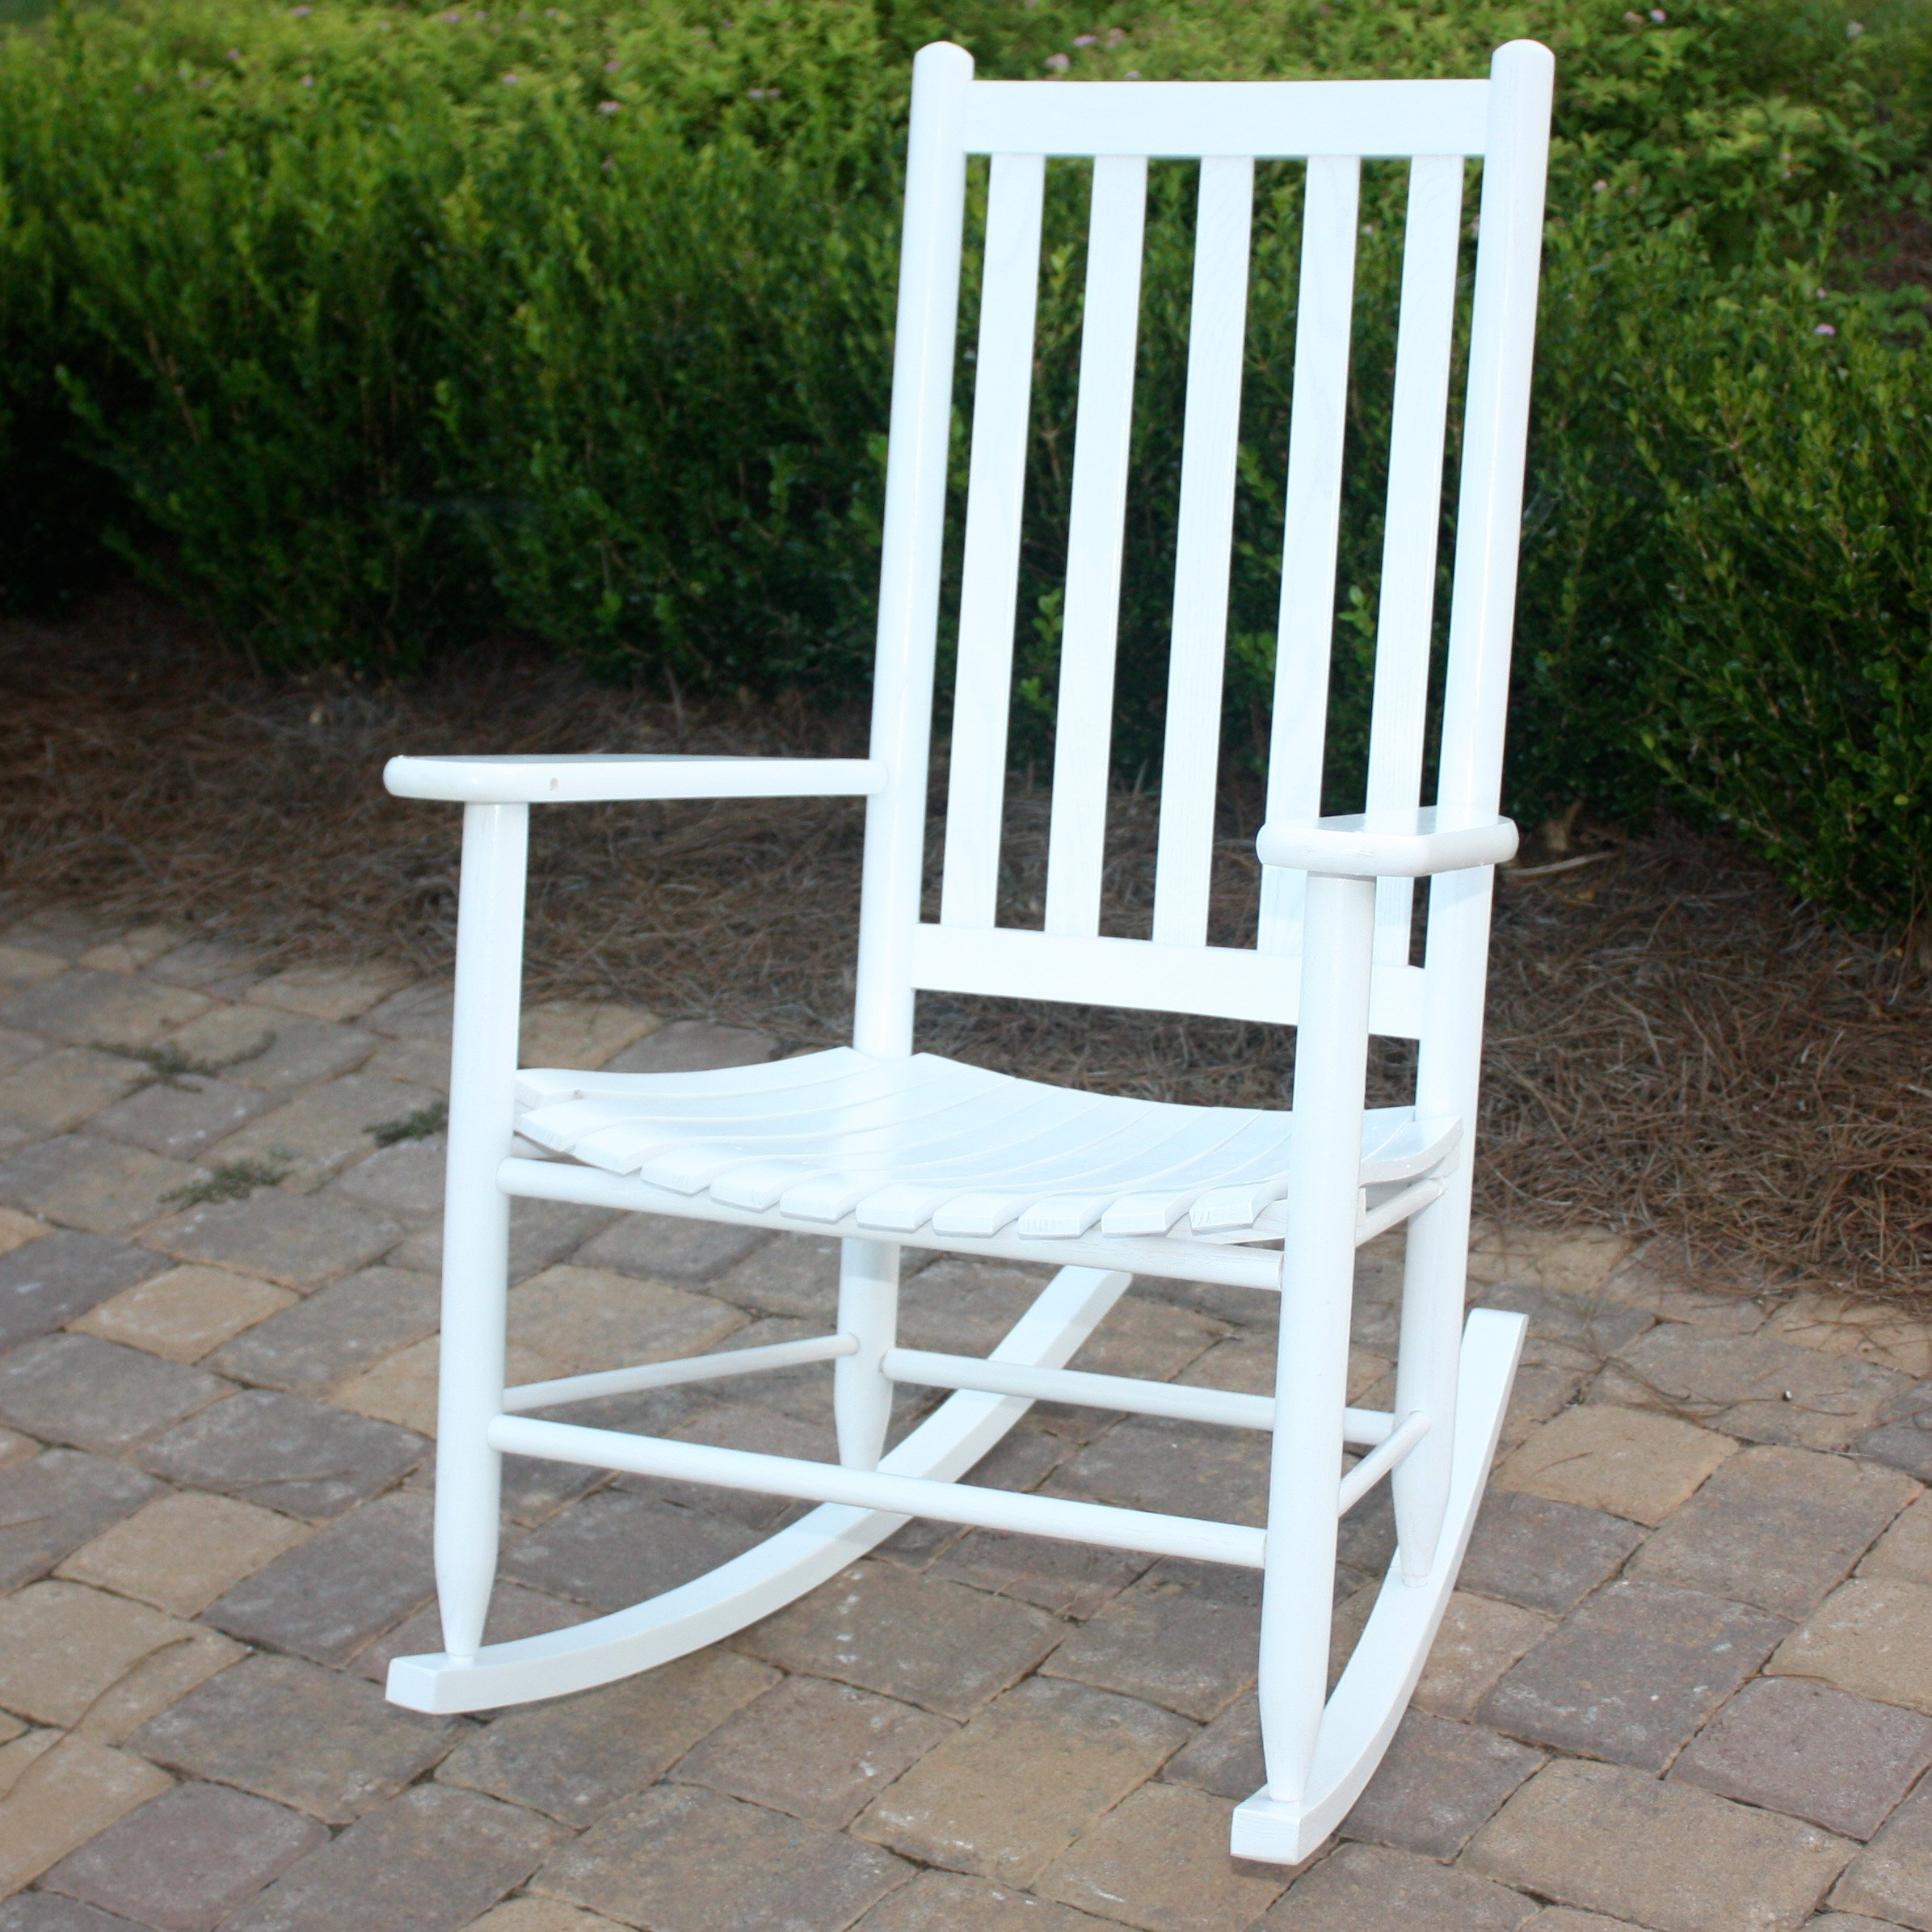 40 Outdoor Rocking Chair Porch, White Wooden Porch Rocking Intended For Indoor / Outdoor Porch Slat Rocking Chairs (#2 of 20)